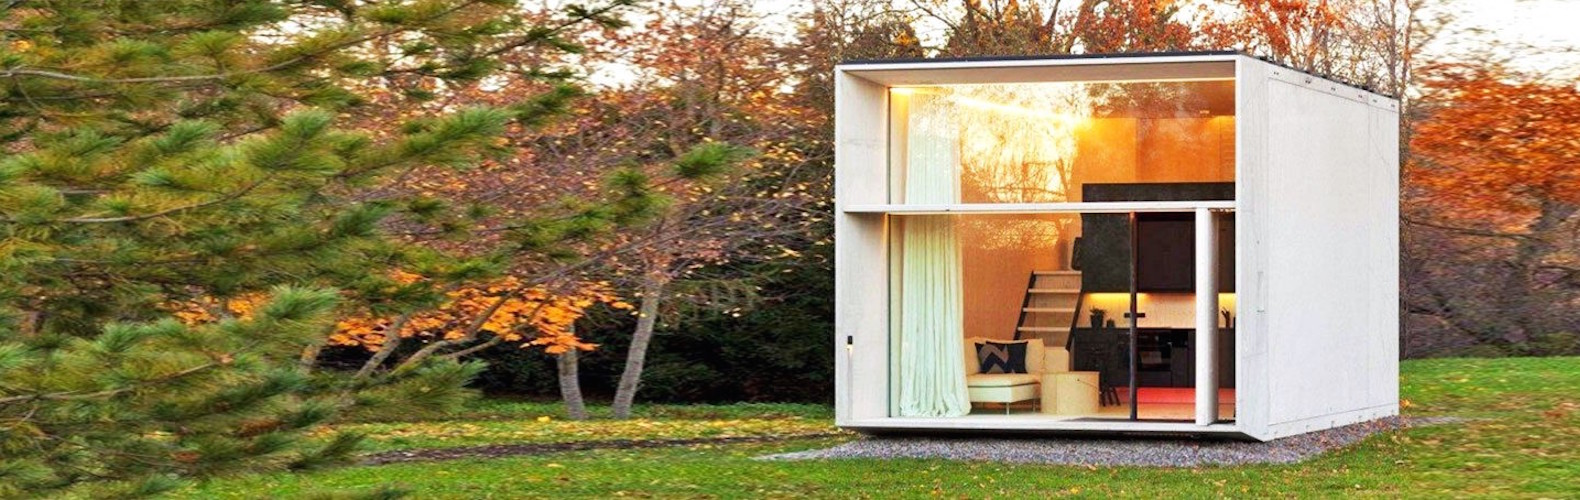 ... concrete house KODA Kodasema LED movable homes off grid & The 10 most inspiring homes of the year | Inhabitat - Green Design ...